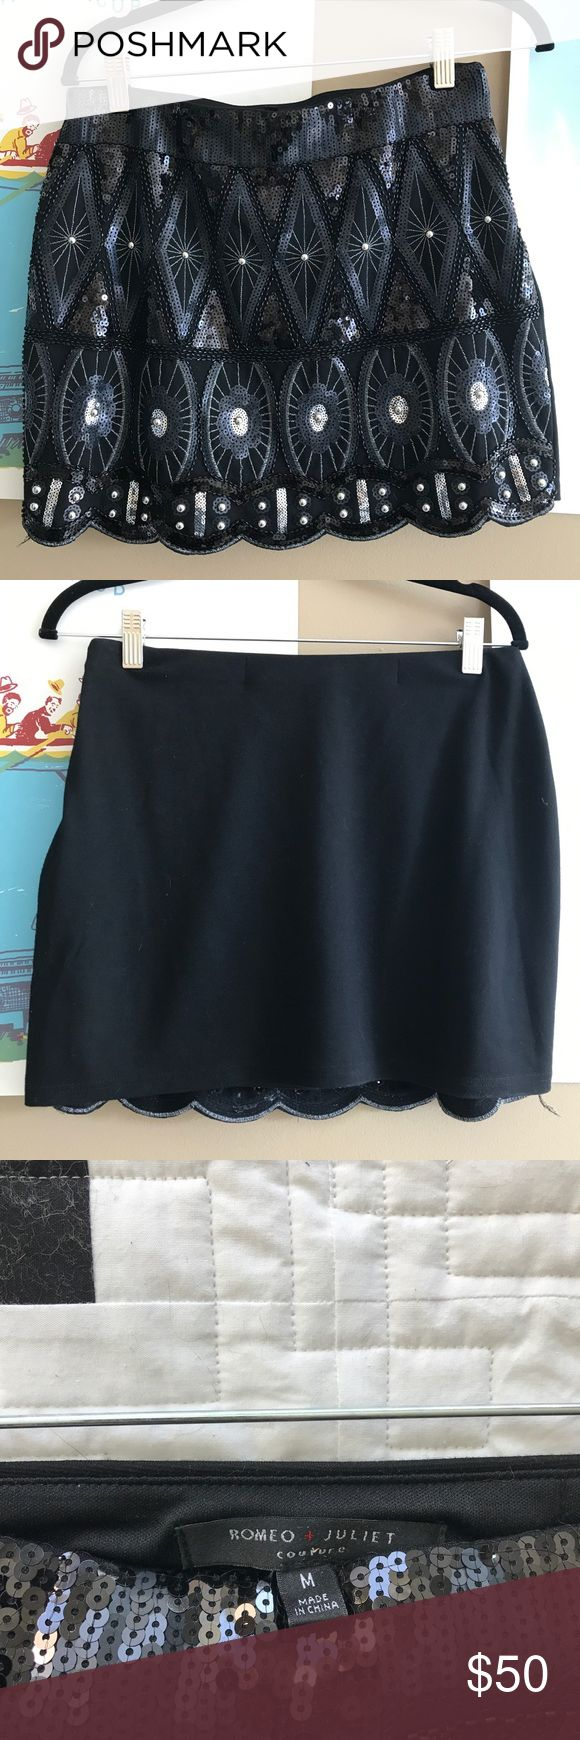 Sequins mini skirt Black and navy sequin mini skirt. Worn once Romeo & Juliet Couture Skirts